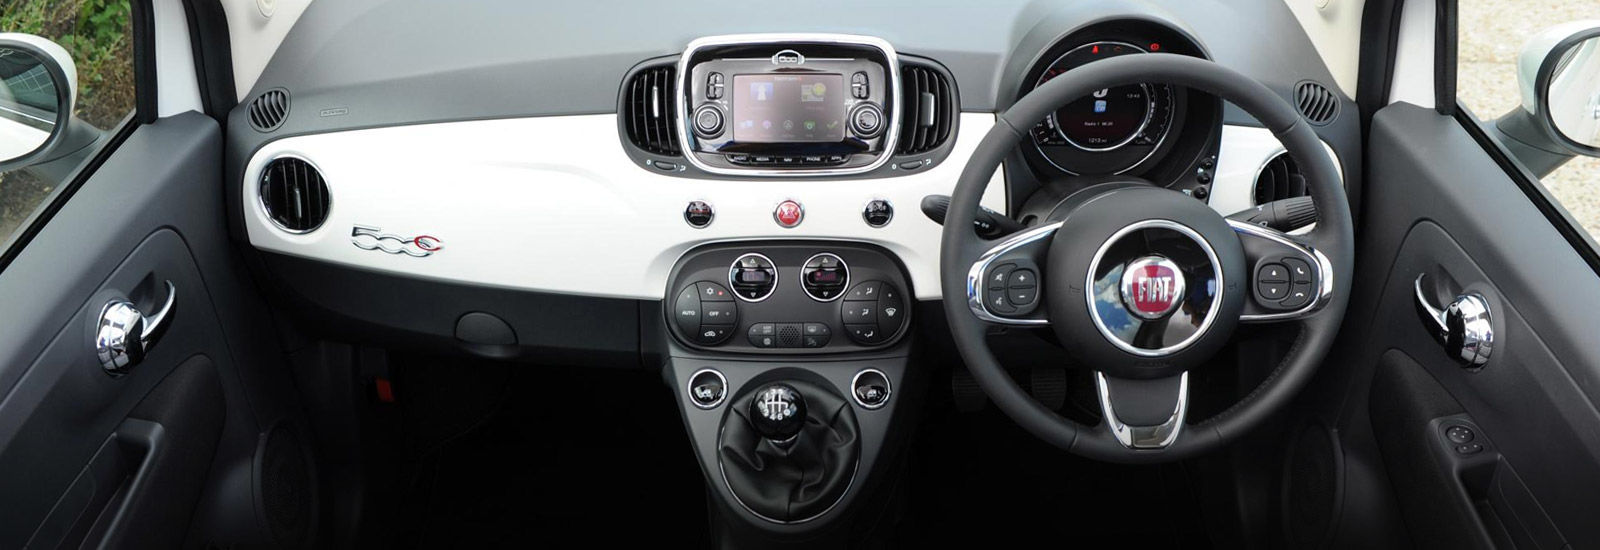 Fiat 500 Price, Specs And Release Date  Carwow